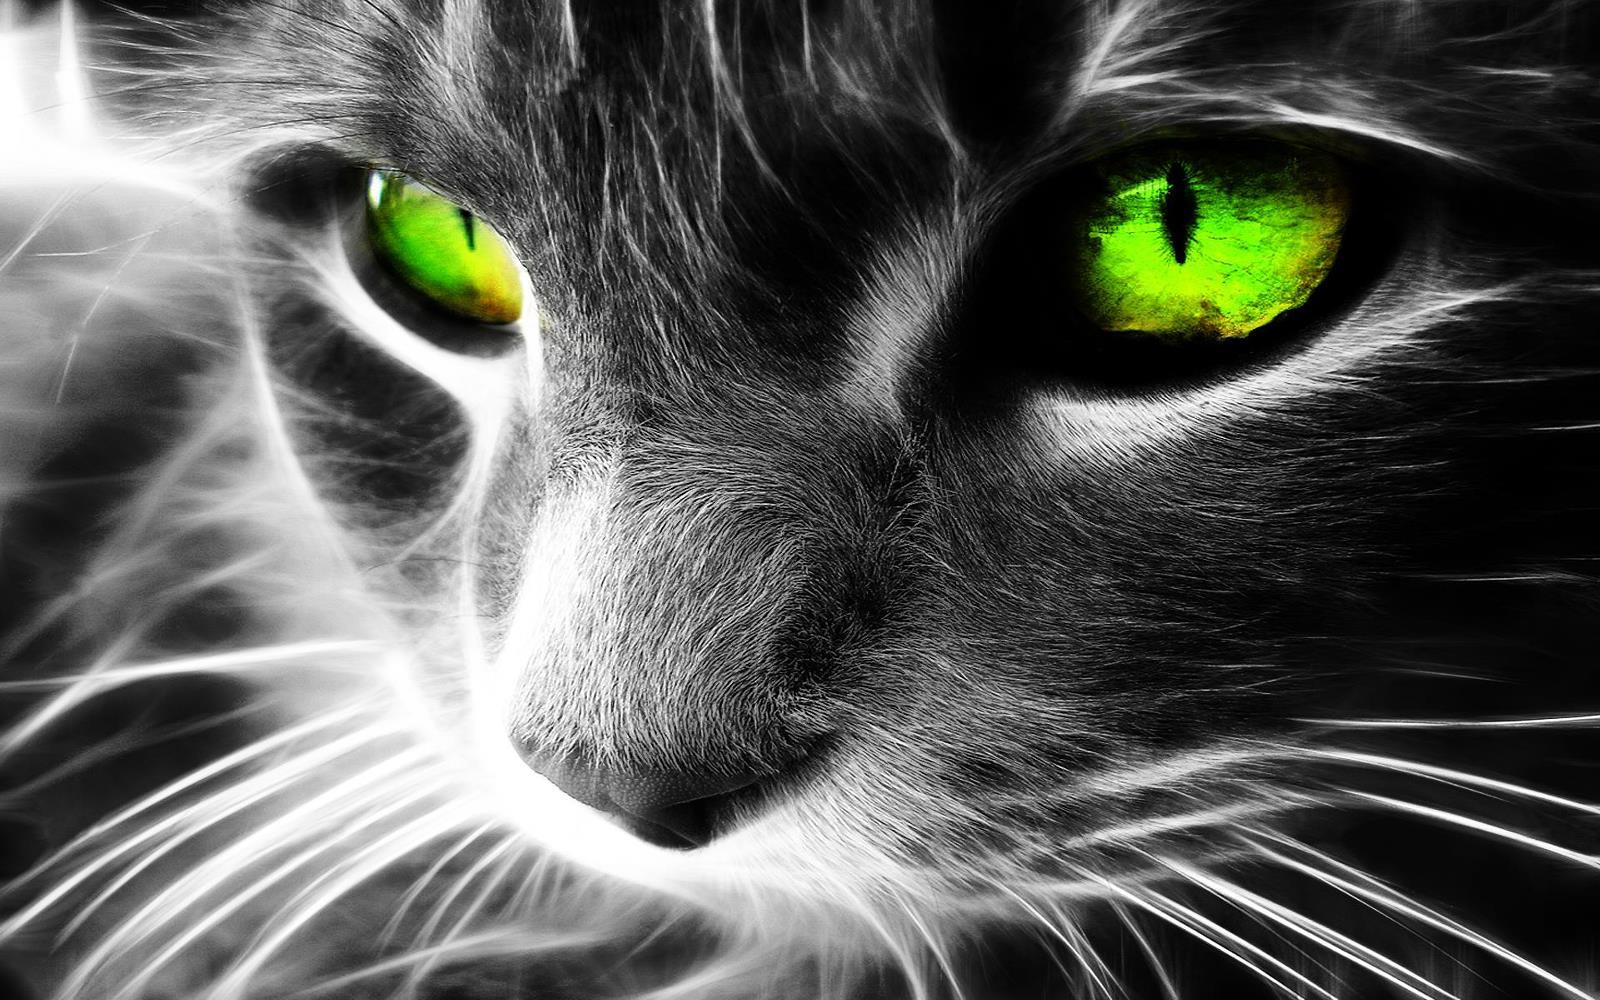 chat-yeux-verts-fonds-d-ecran-effets-lumiere-et-retouche-photo_10